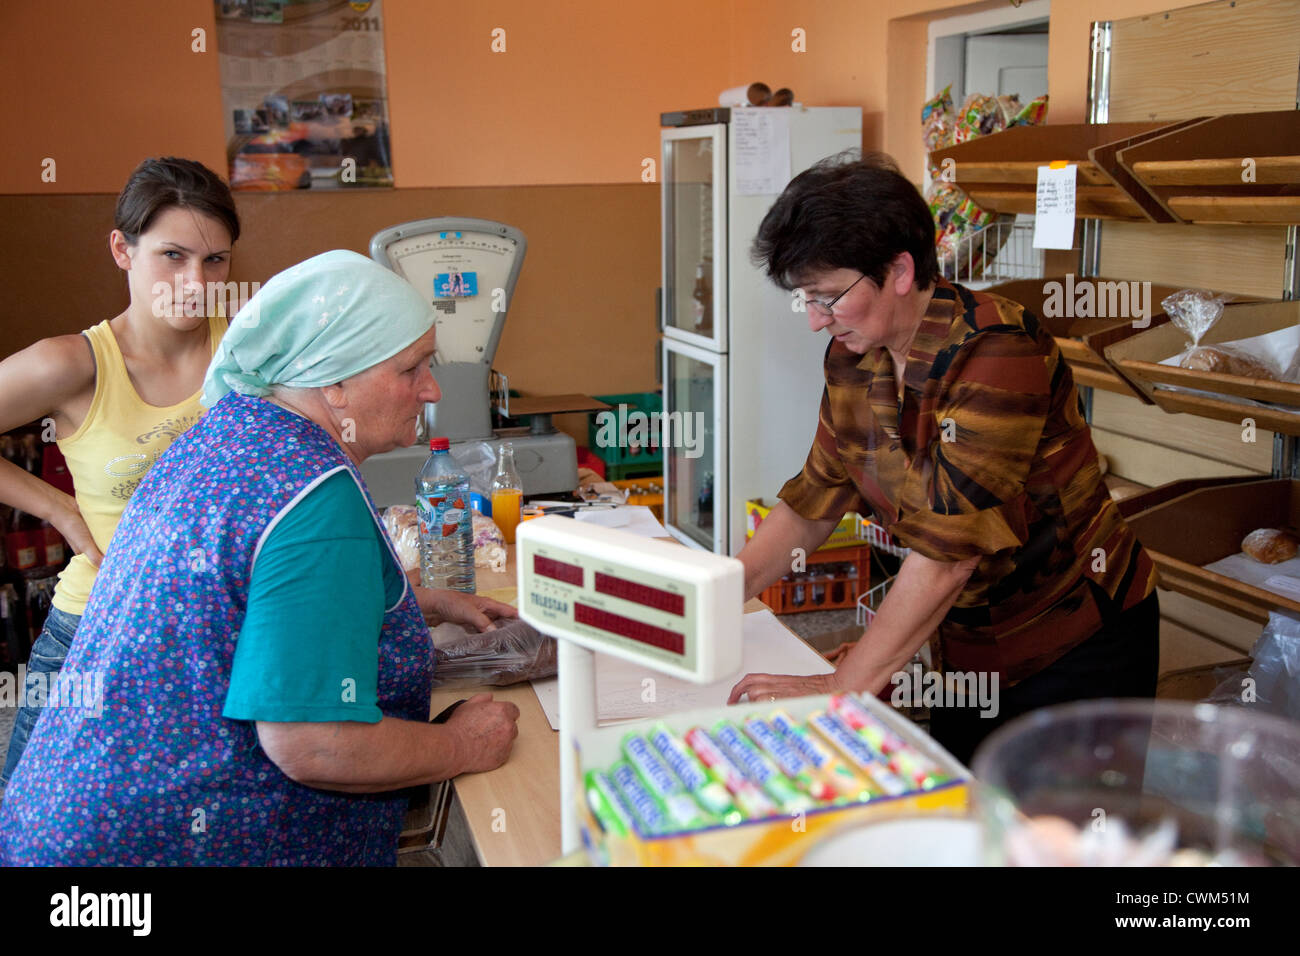 Impatient teen girl overseeing her grandma's shopping trip to village grocery store age 16, 85 and 50. Mala - Stock Image